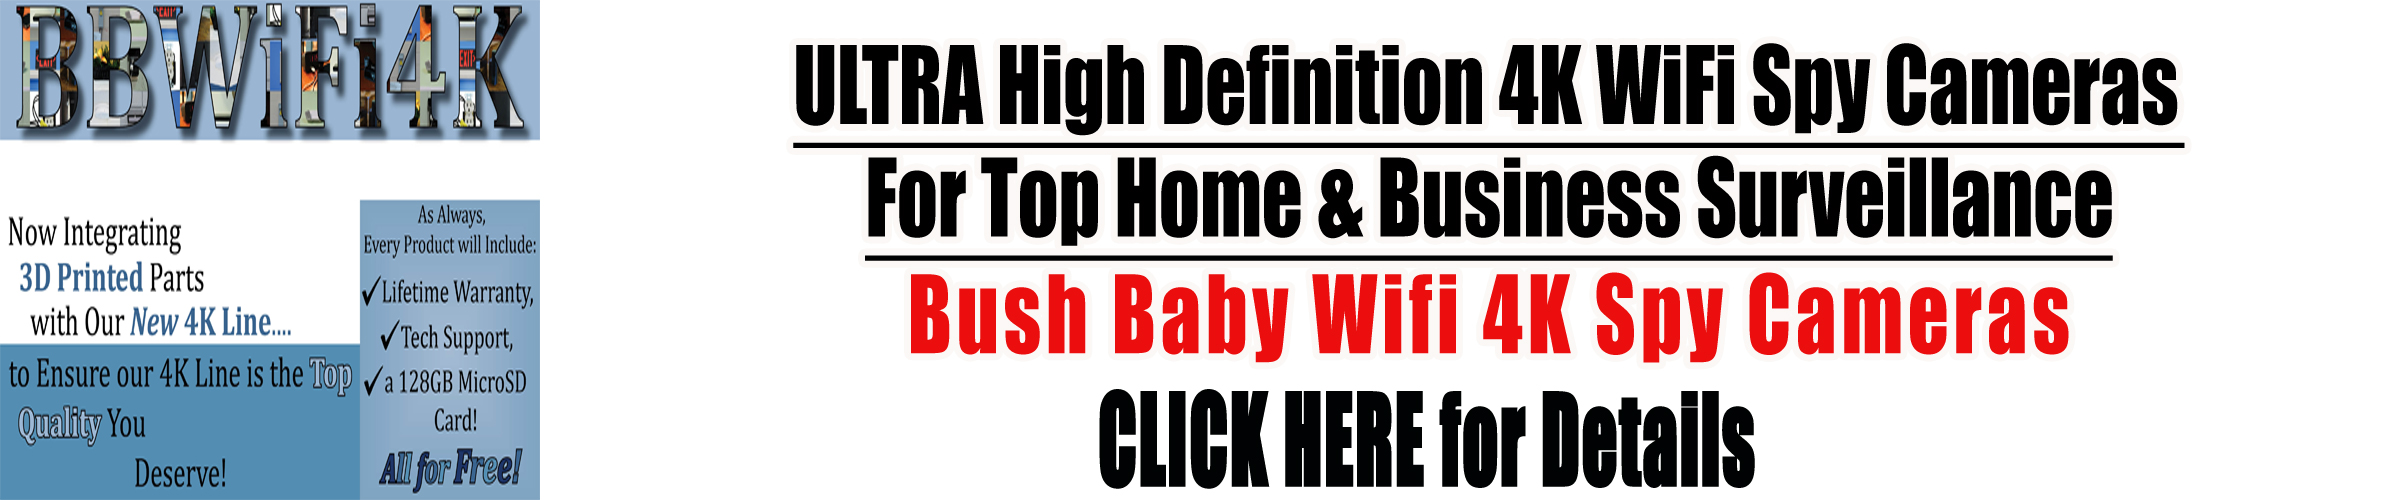 Bush Baby 4K Wifi Spy Cemeras